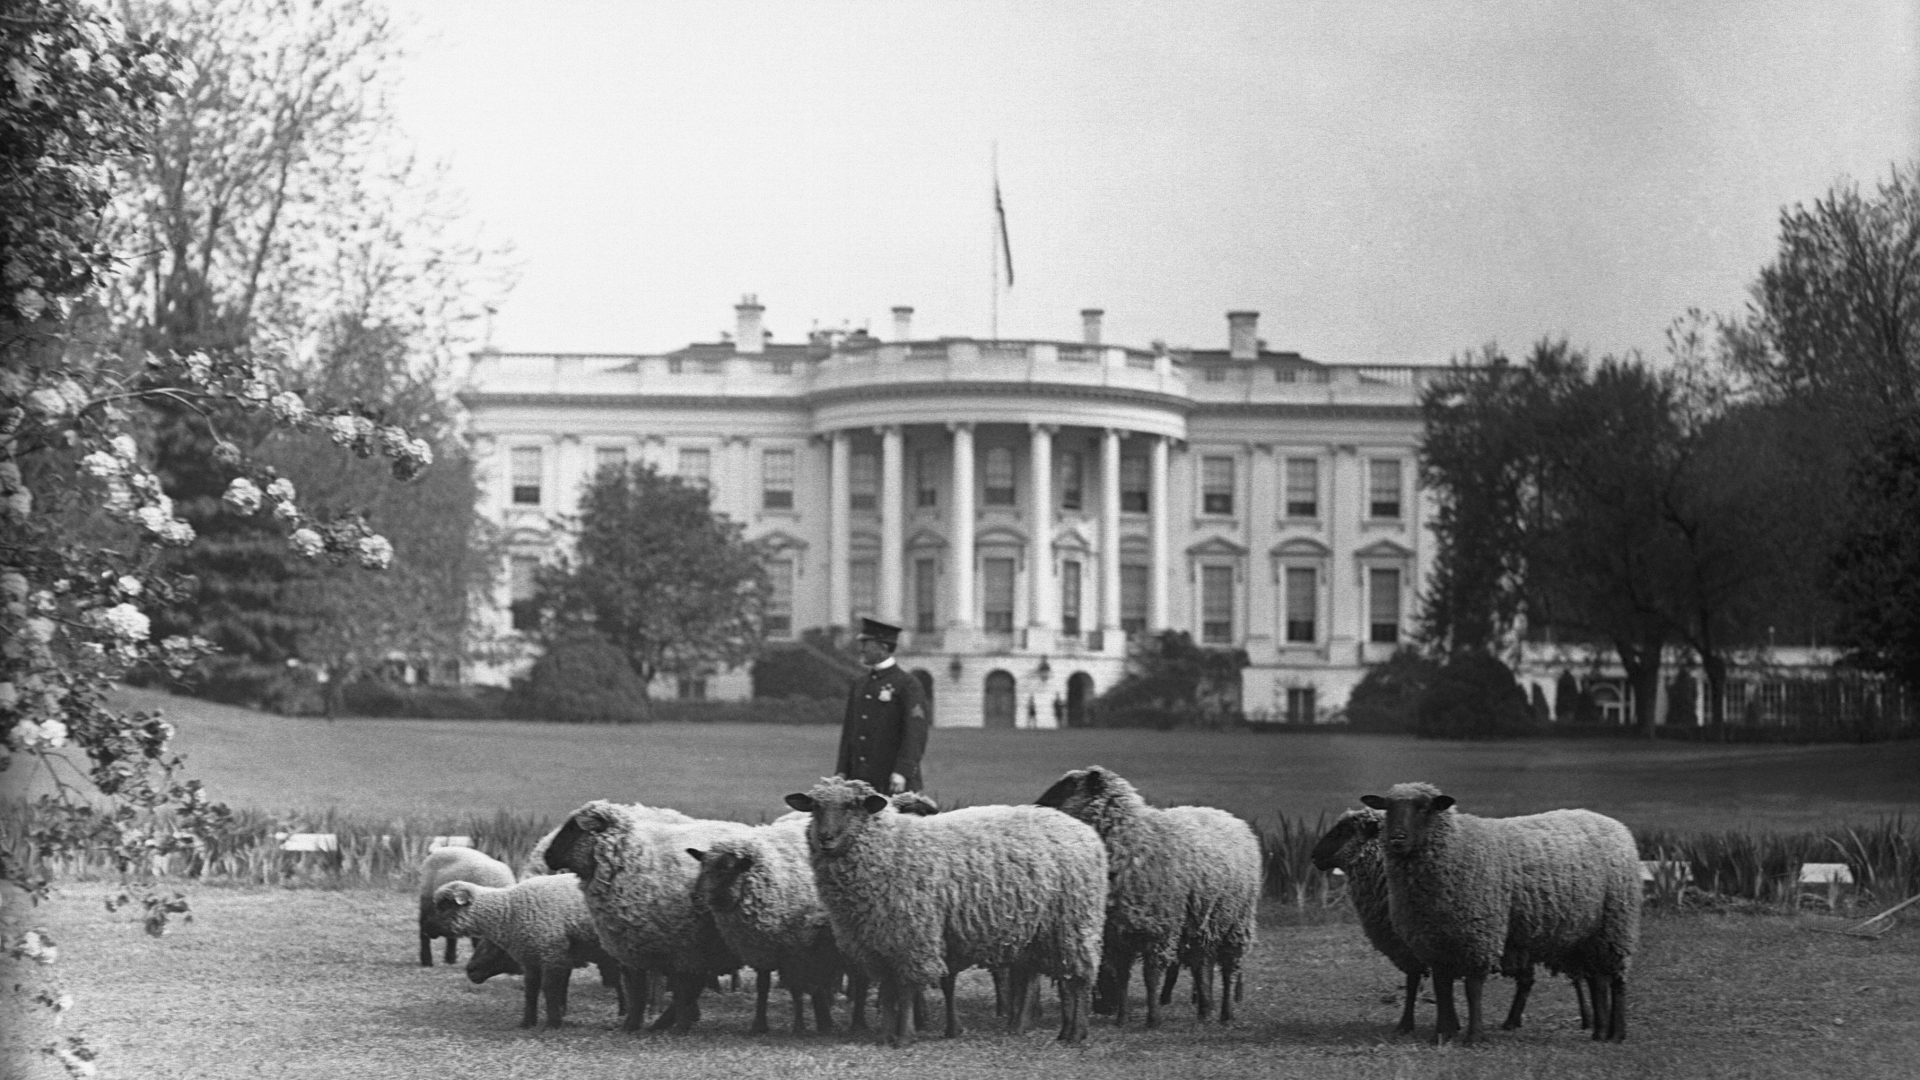 Sheep grazing on the White House lawn, 1918. (Credit: Bettmann Archive/Getty Images)